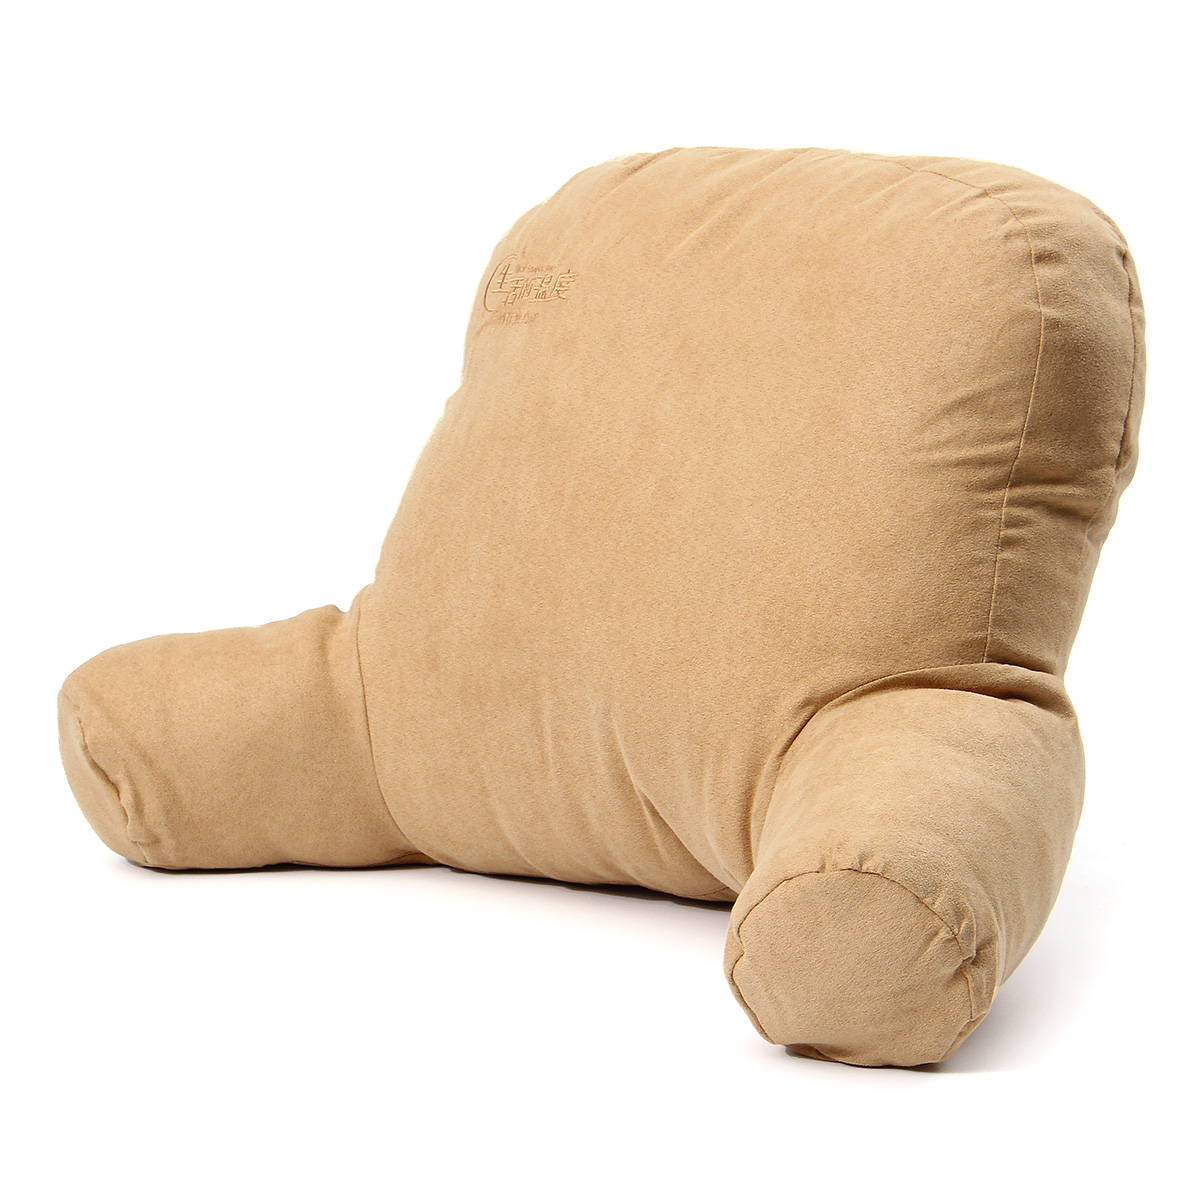 Micro Reading and Sitting Lounger Back Support Pillow with Arms Soft But Firmly Stuffed Cottonfill